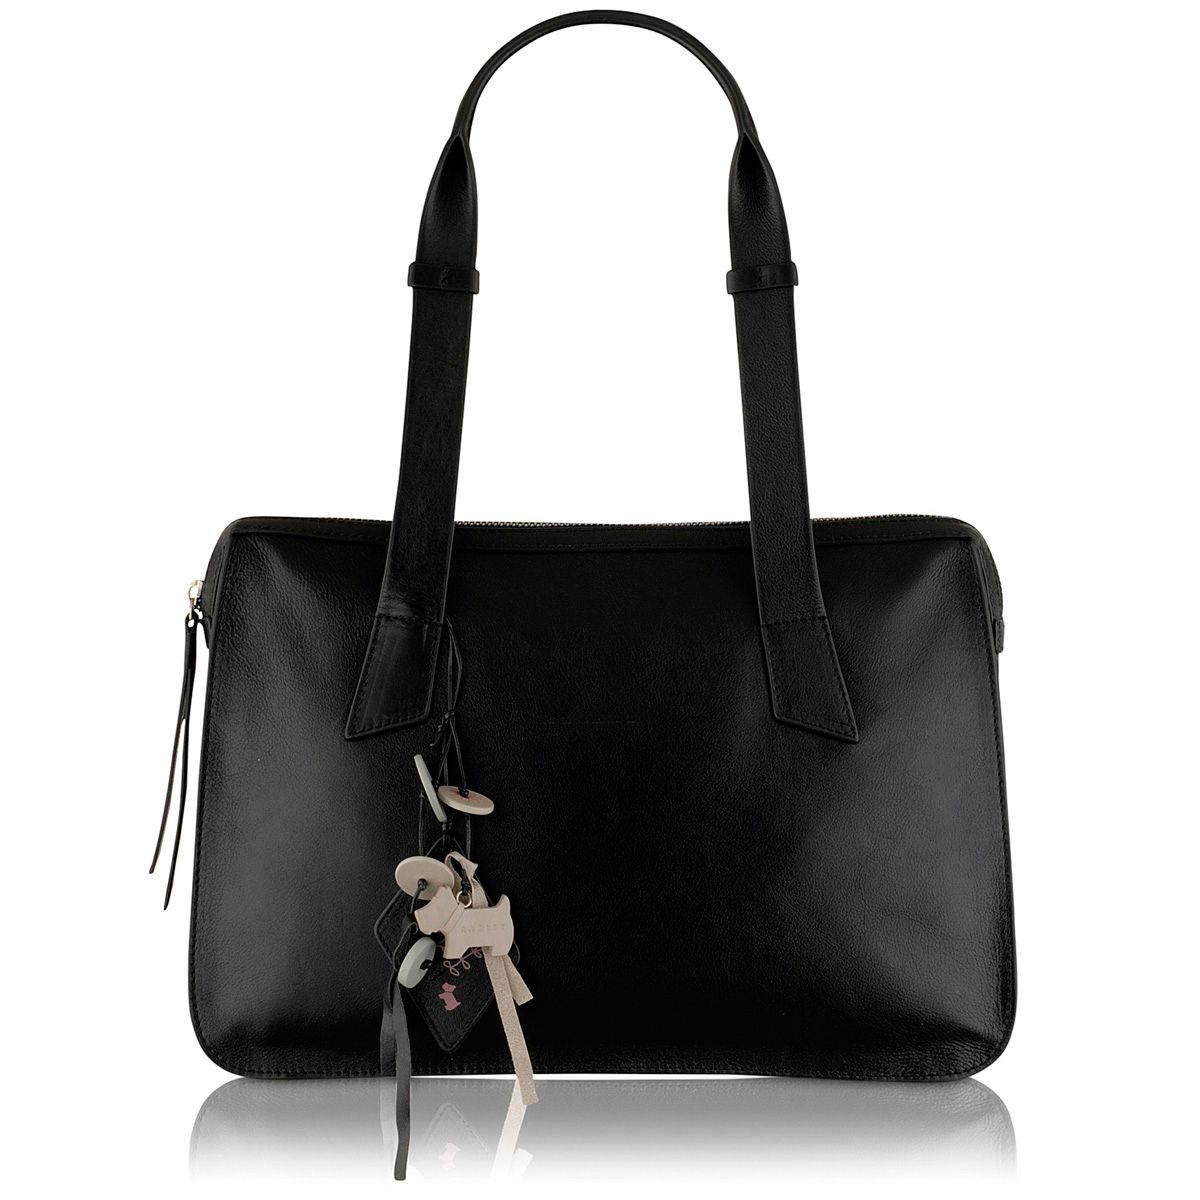 Black medium shoulder bag